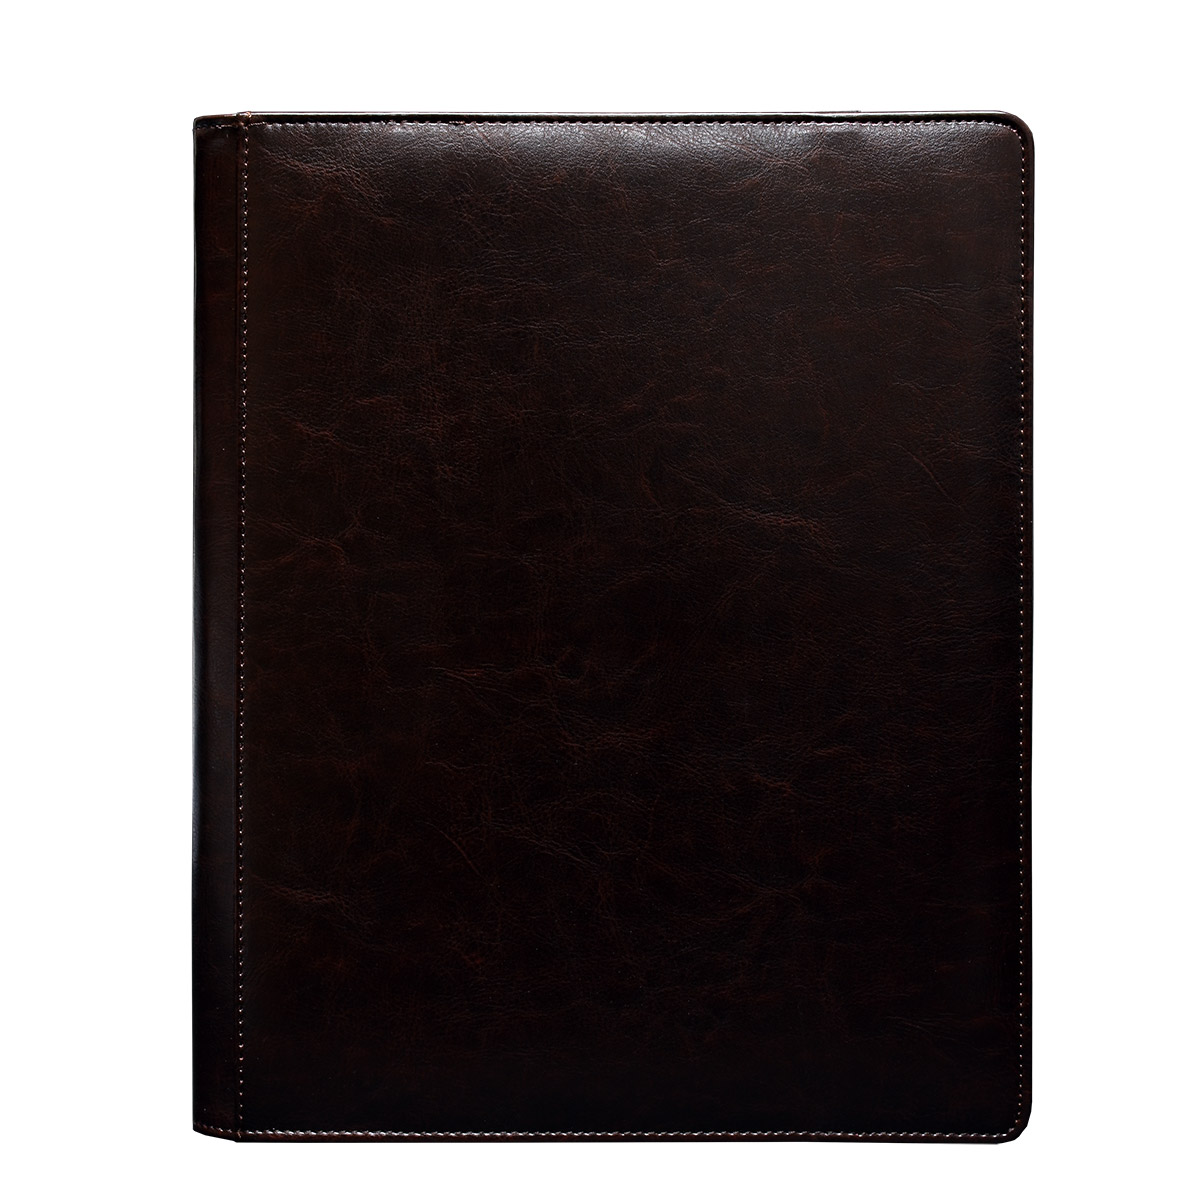 Premium Pro-binder: Limited Edition Cowhide Box Front